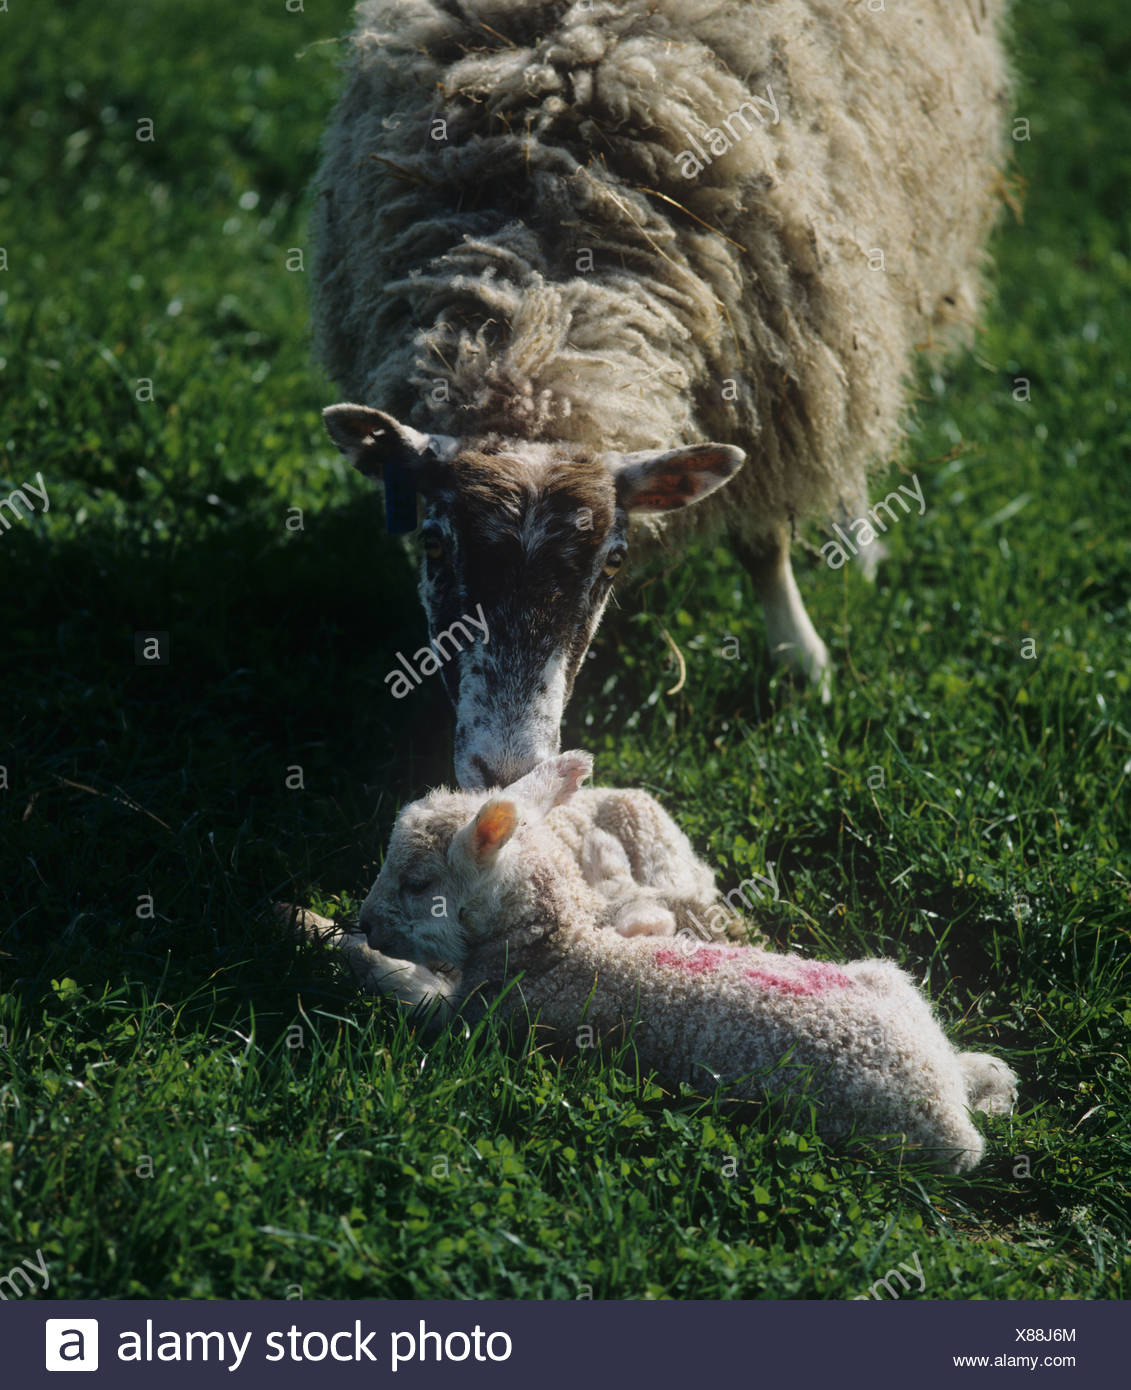 North of England mule ewe licking one of her new born lambs Dorset - Stock Image